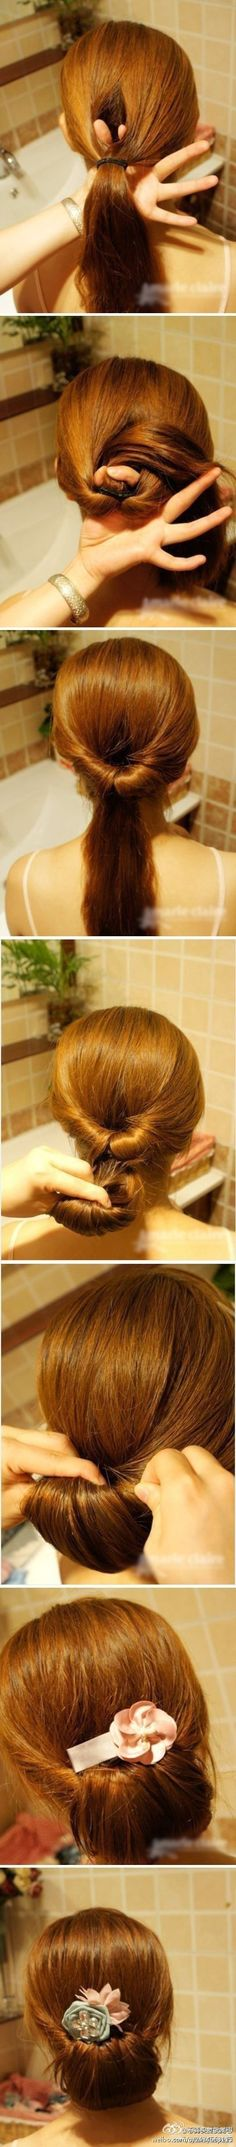 We used to make the pull-through ponytail in Primary School... But the bun is soo much cuter ! Super easy too !